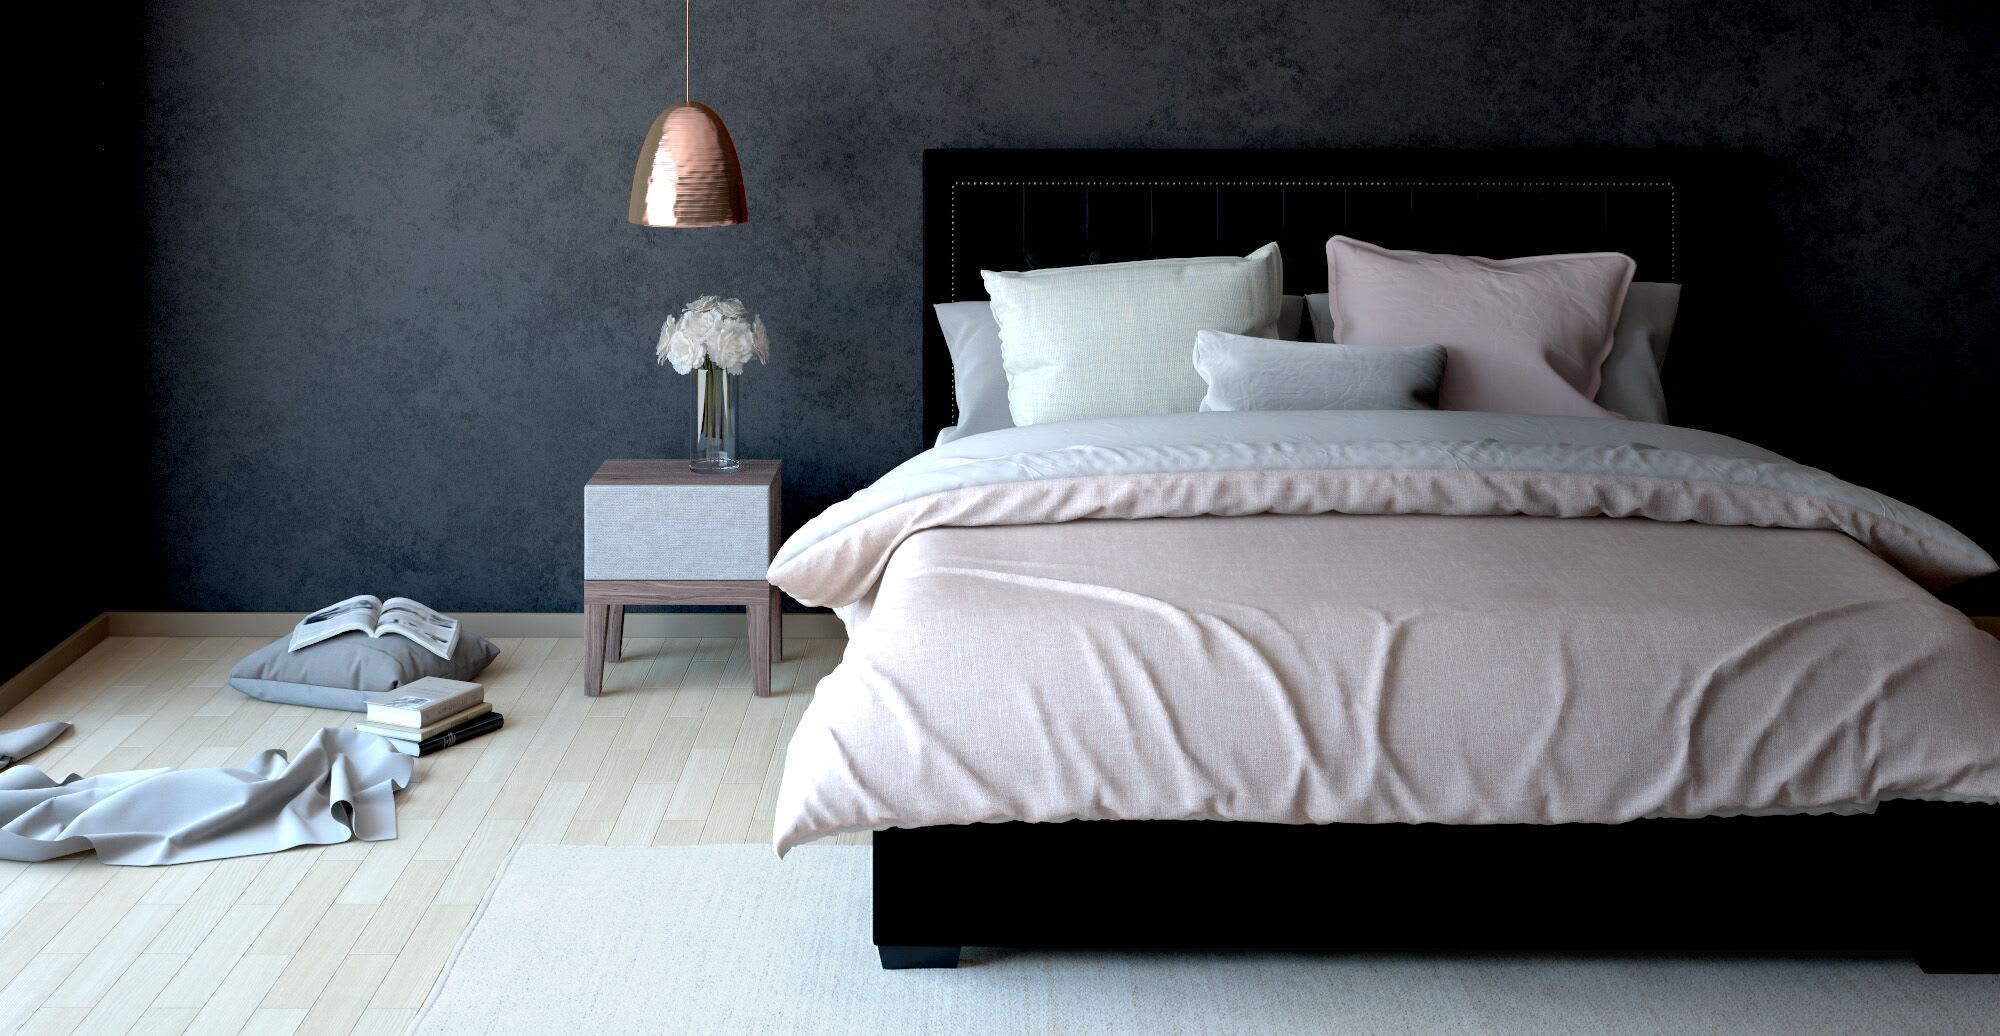 a designer bed with multiple pillows